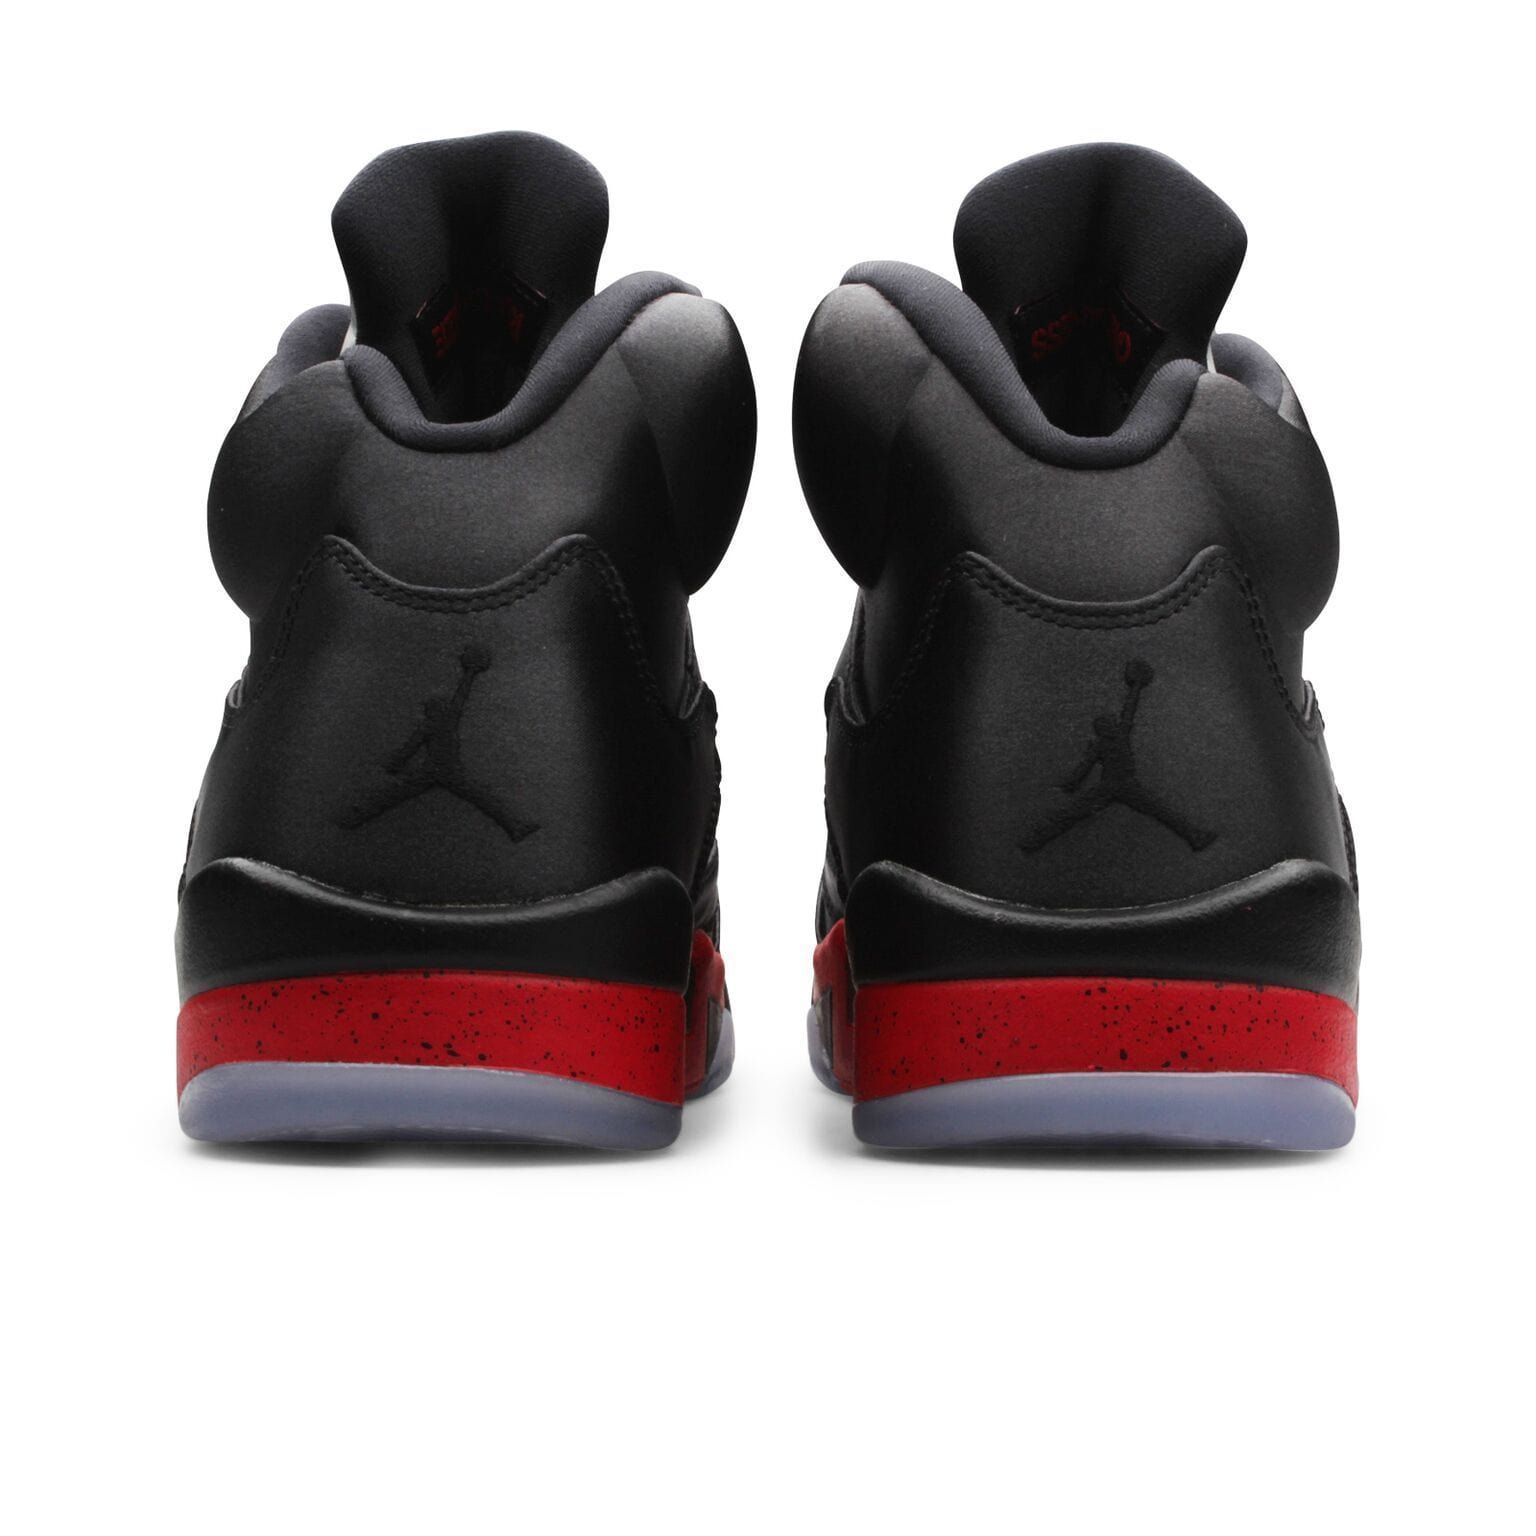 new arrivals 39b38 e7f8b Jordan Brand AIR JORDAN 5 RETRO (Black University Red)  136027-006